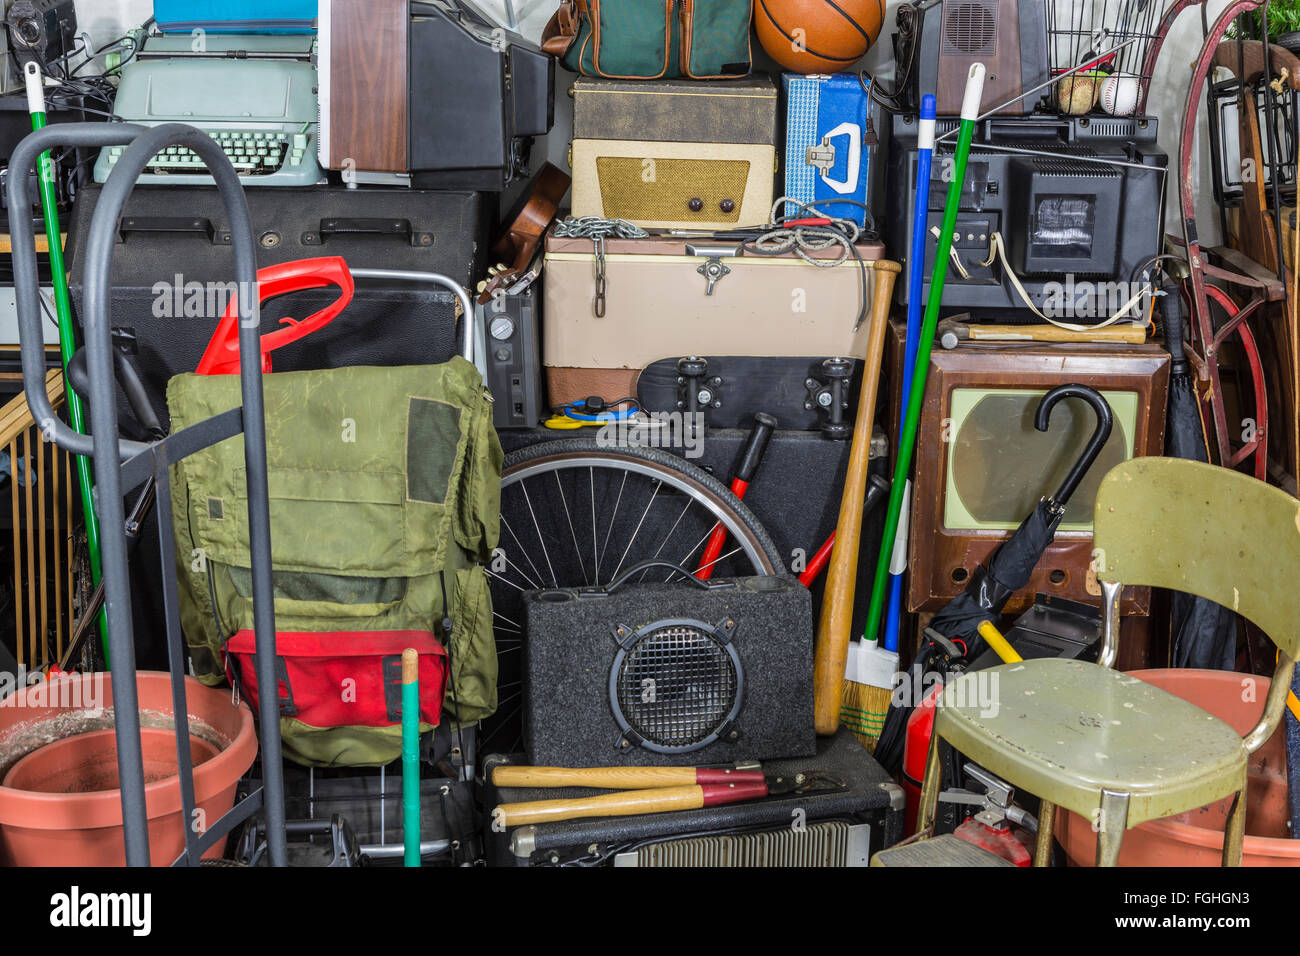 Vintage rummage junk pile storage area mess. - Stock Image